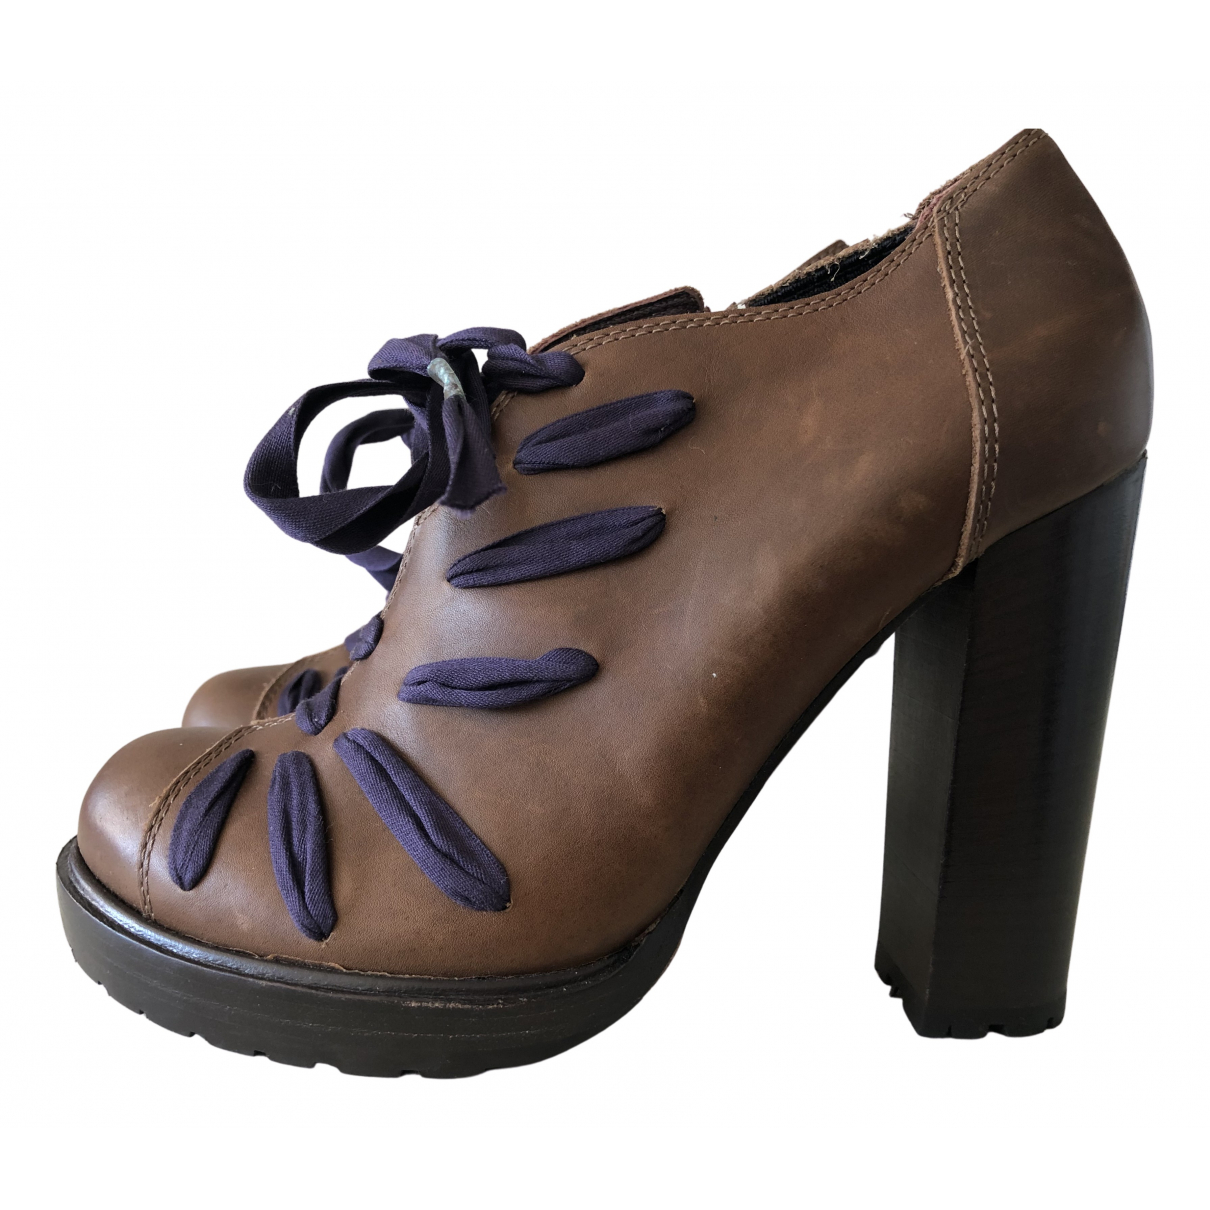 Vanessa Bruno N Brown Leather Lace ups for Women 37 EU